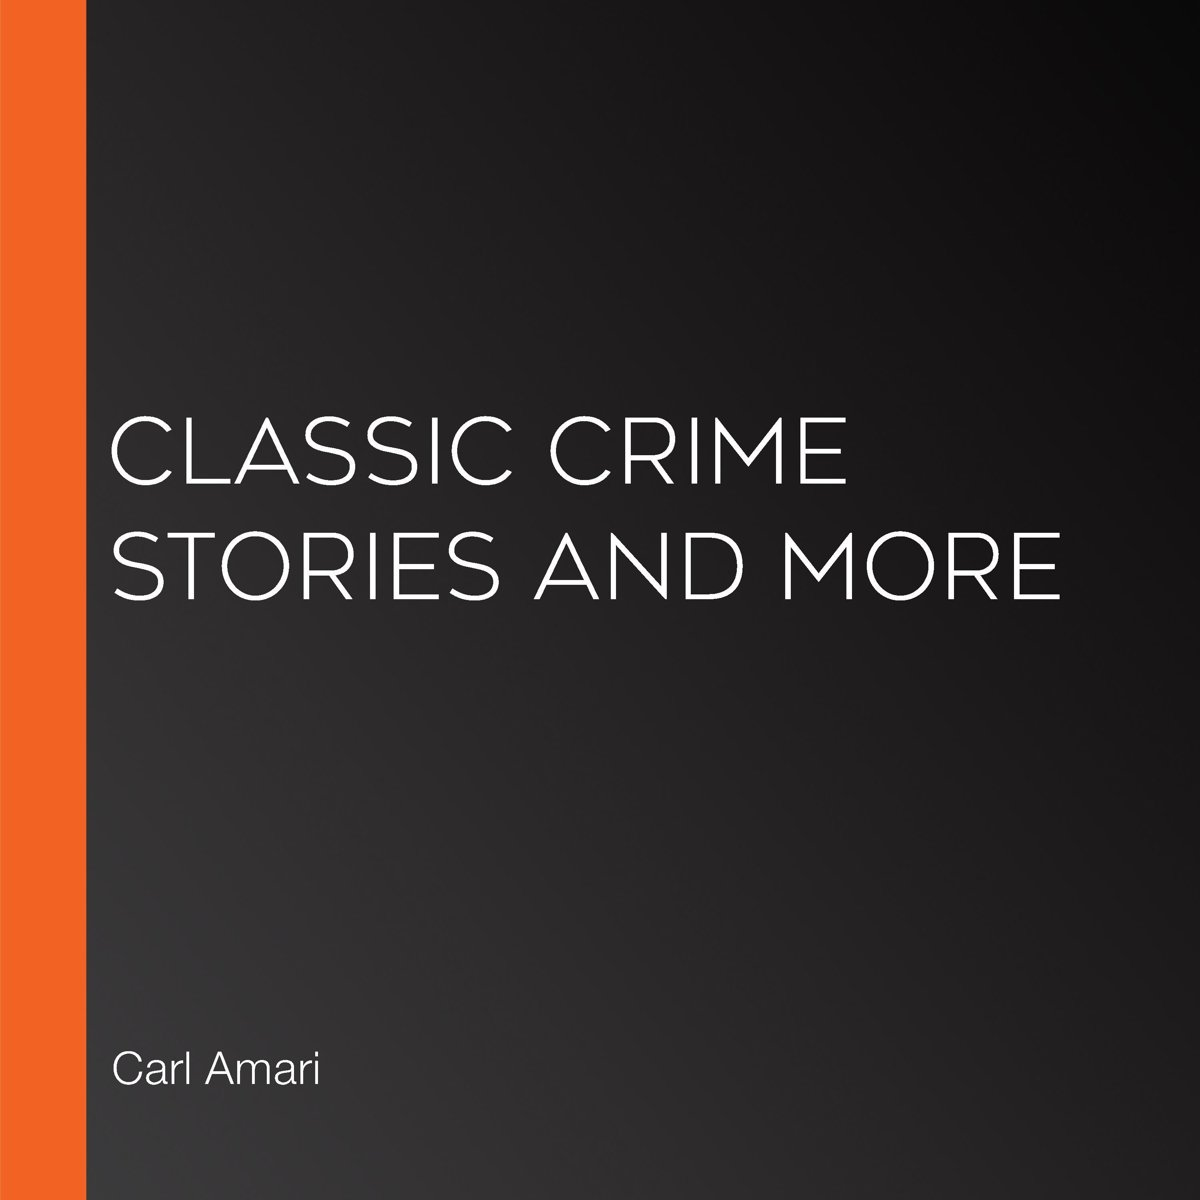 Classic Crime Stories and More